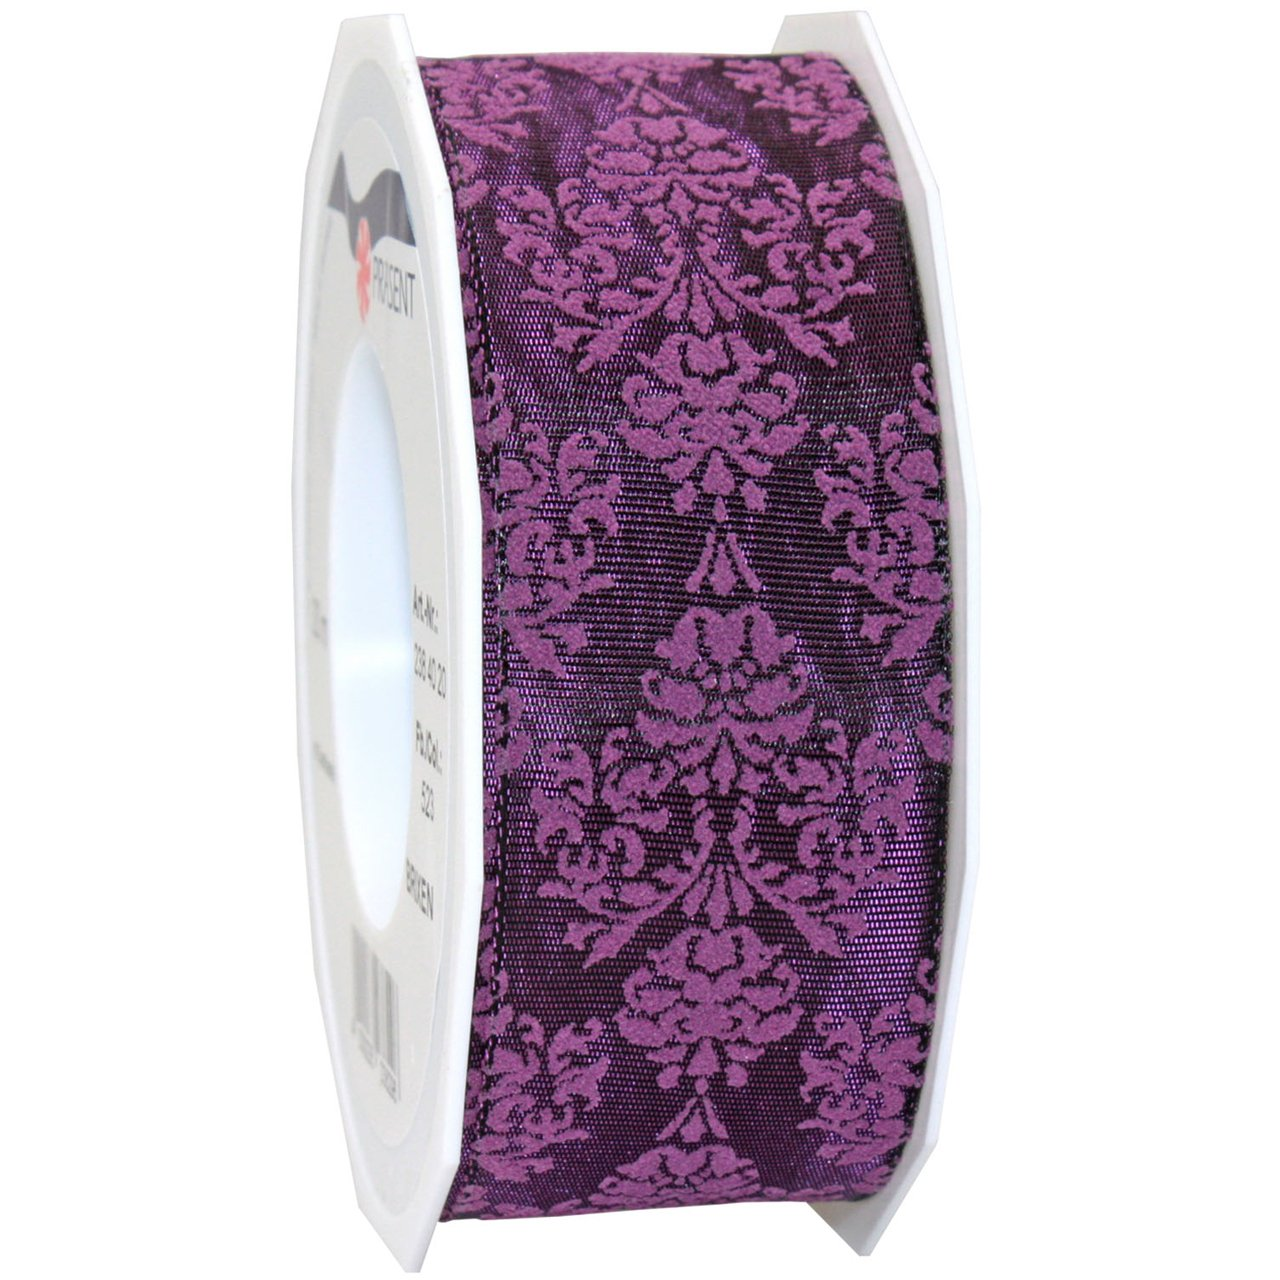 Purple Morex Ribbon Baroque Floral Printed Taffeta Ribbon, 11 2 by 22Inch Yard Spool, Red